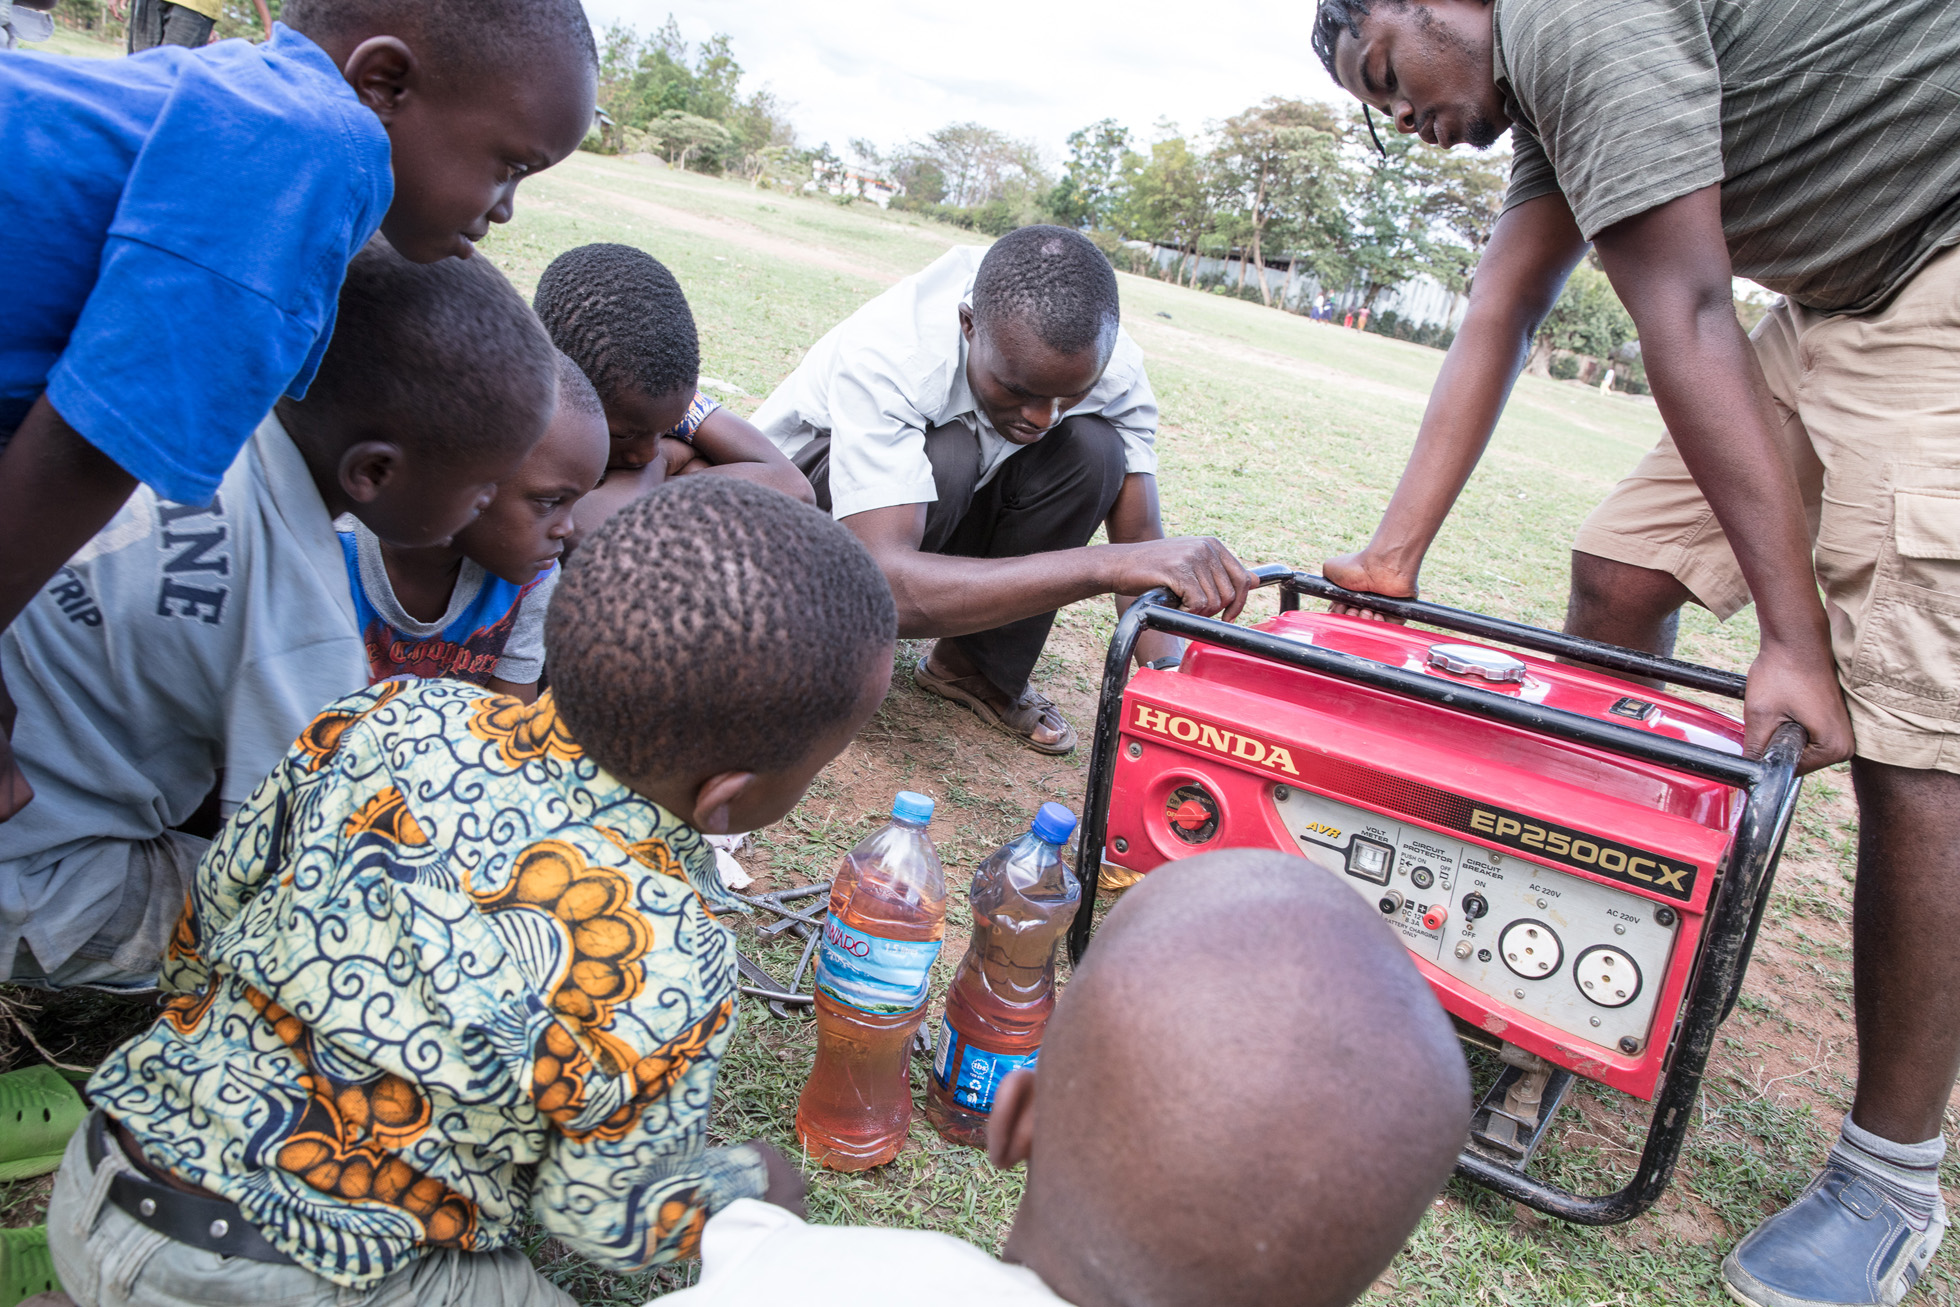 Even though his tools were quite simple, this mechanic fixed the generator without any major problem. A lot of the children in the neighbourhood were watching closely. Photo: Per Harald Olsen/AfricanBioServices